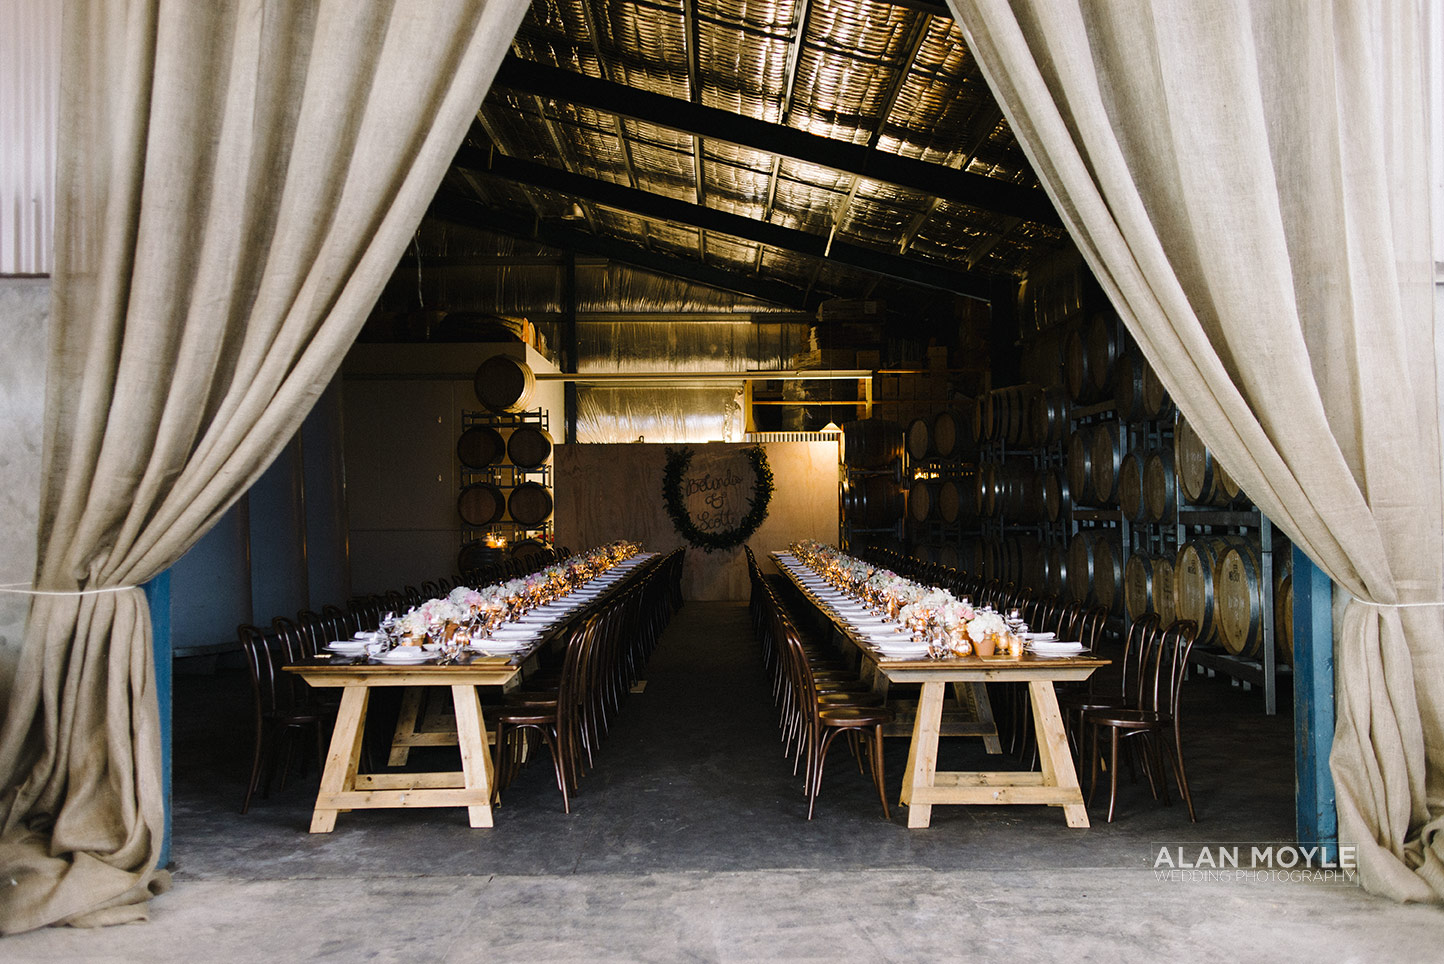 1405austin-289weddings_of_desire_melbourne_styling_event_geelong_alan_moyle_vineyard_winery_caligraphy_laura_sprout_hire_bayside.jpg